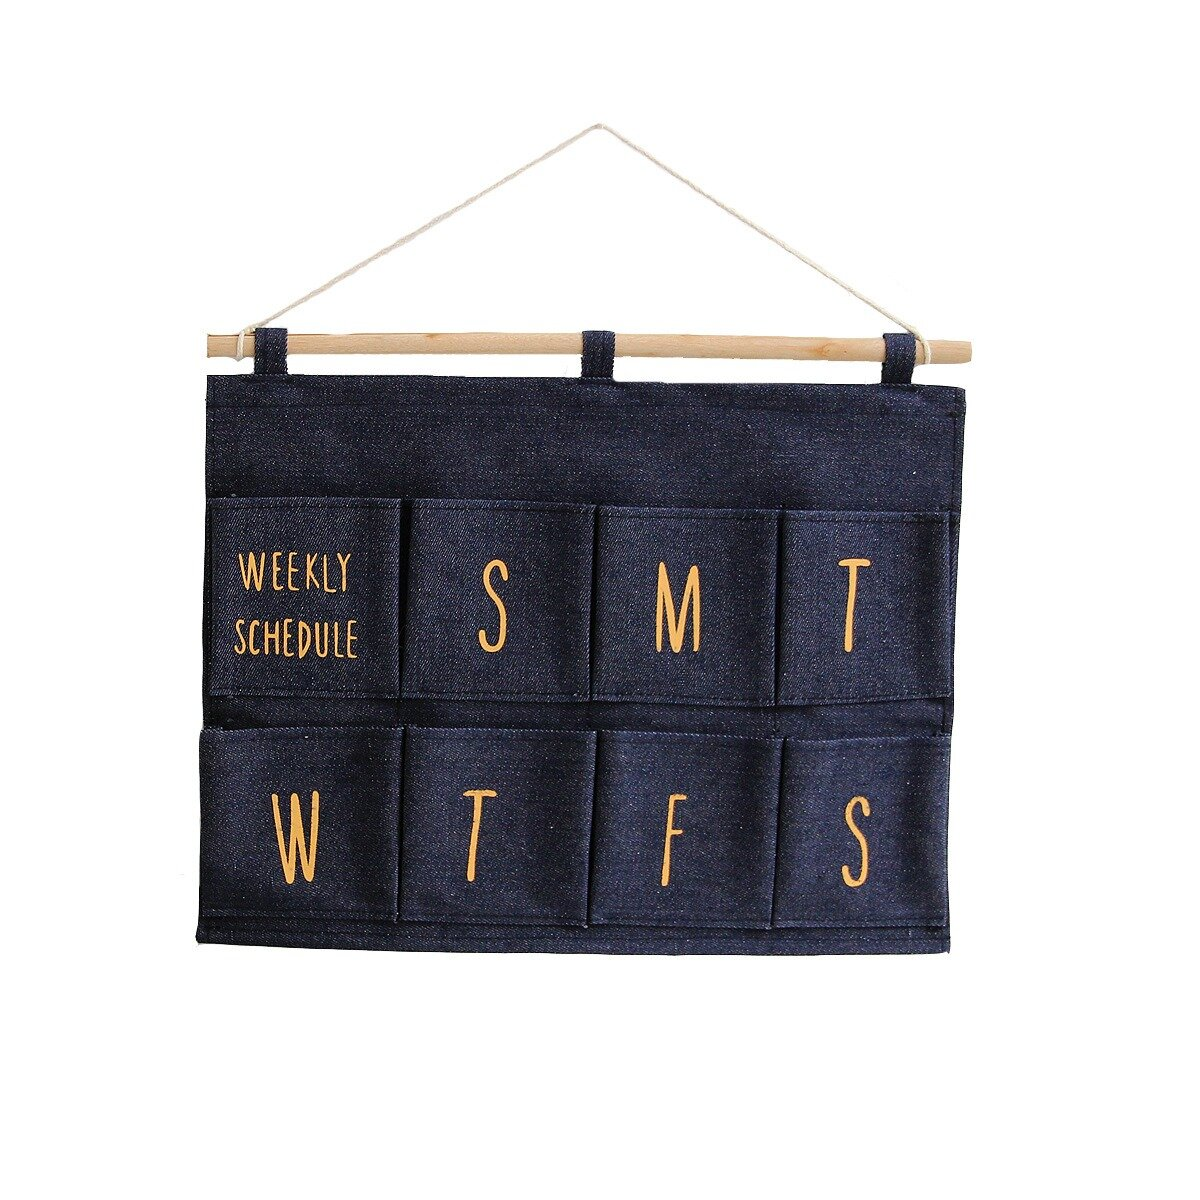 Wall Hanging Storage Bag Organizer Pockets Concise Northen Style Cotton Canvas Stuff Holding Bag